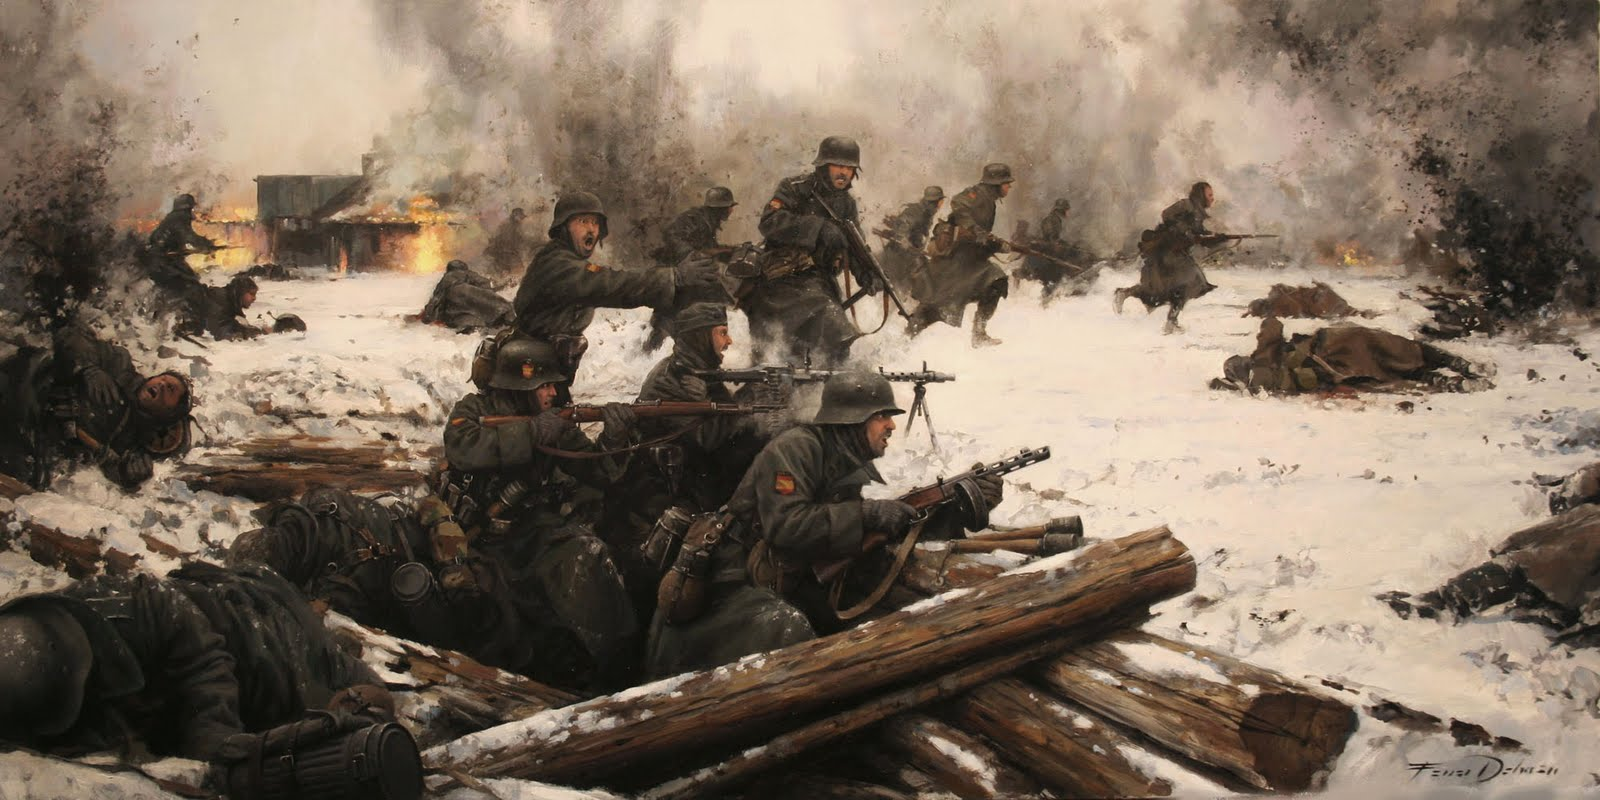 world war 1 2 hd wallpapers and backgrounds fotolip com rich image